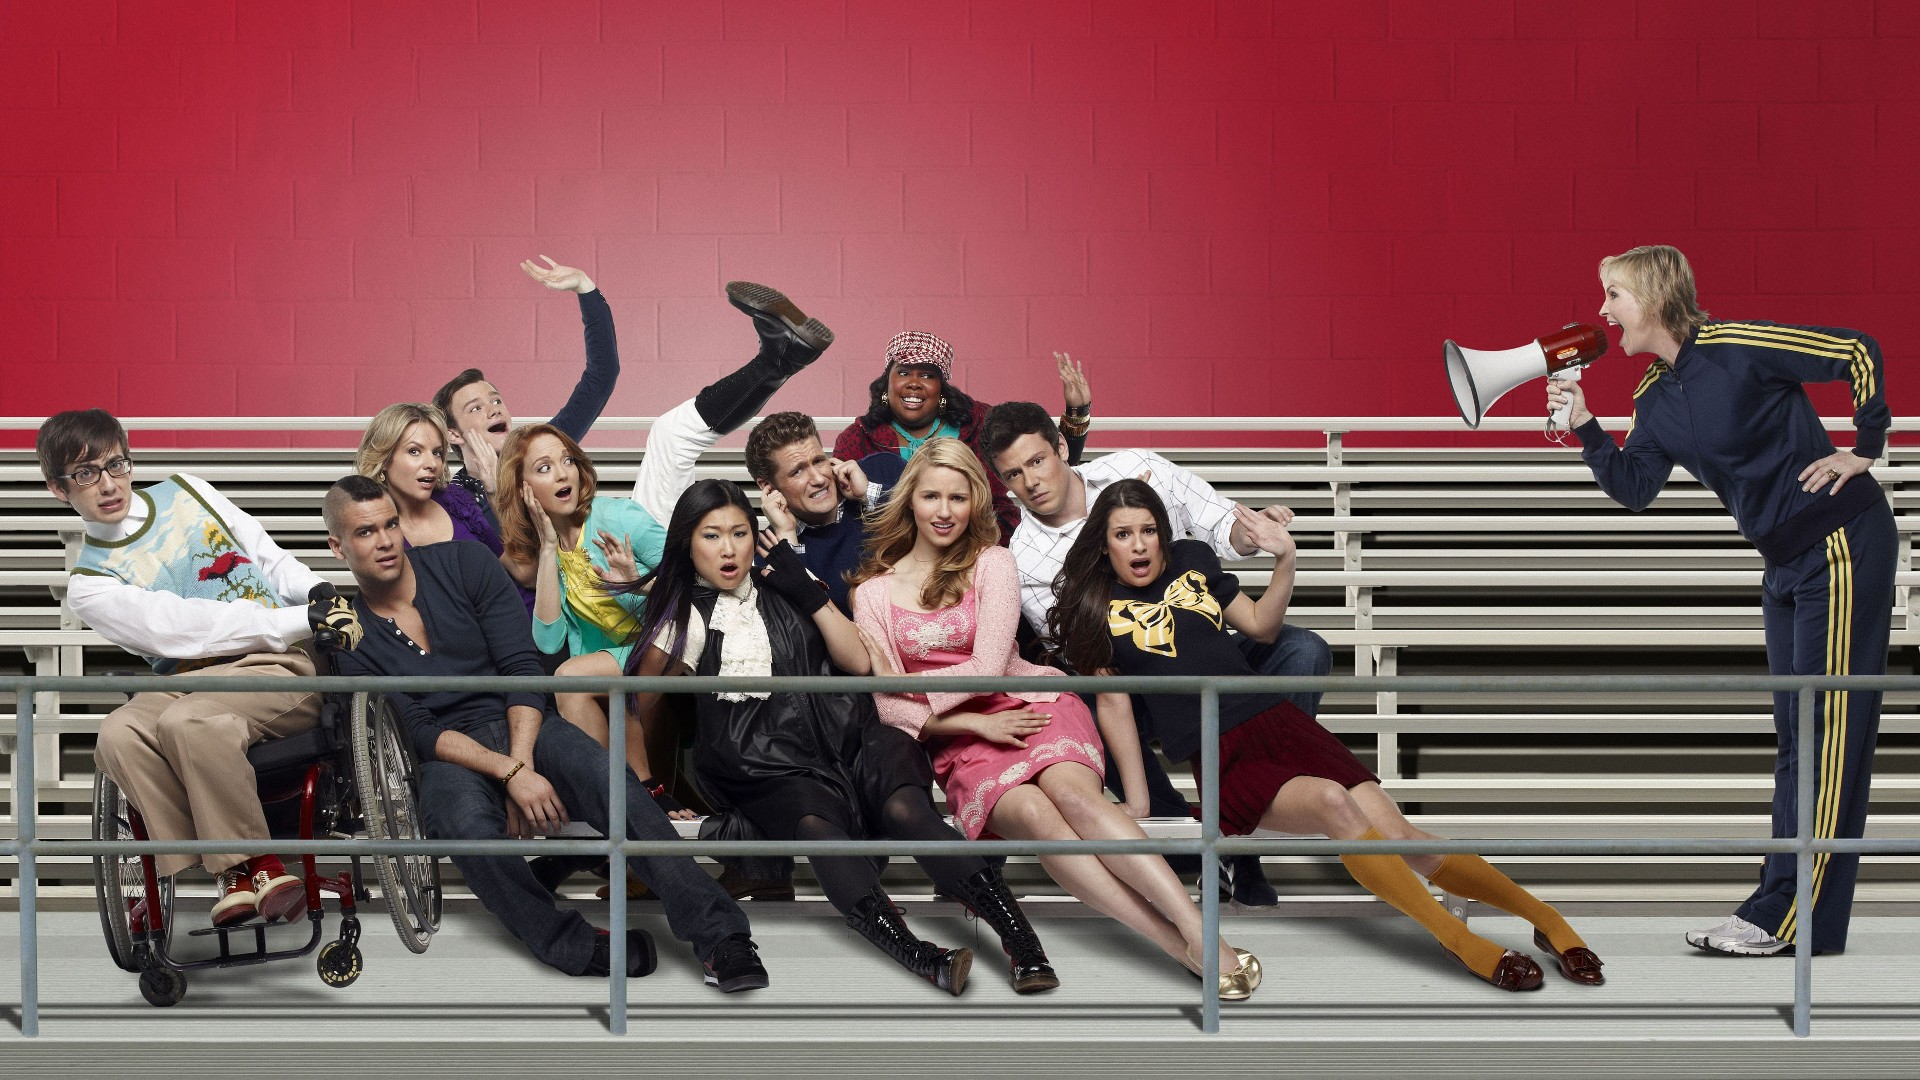 Video-interview met (nieuwe!) Glee acteurs over seizoen 4